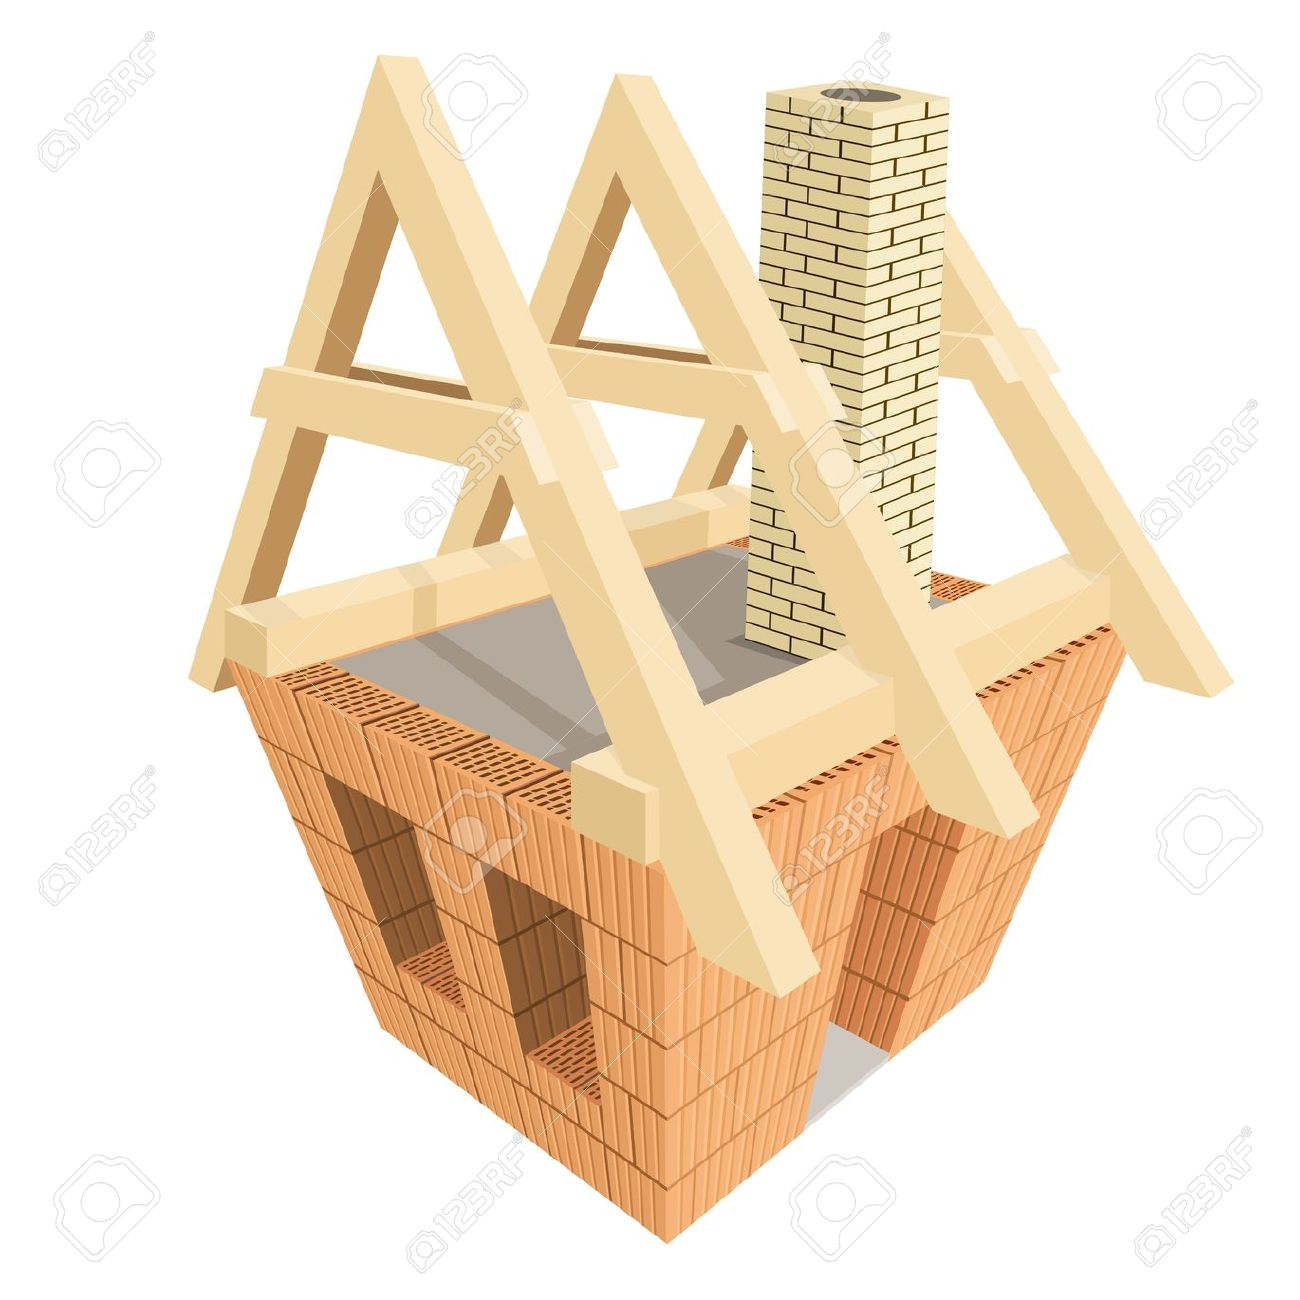 Haus bauen clipart picture library library Haus baustelle clipart - ClipartFest picture library library